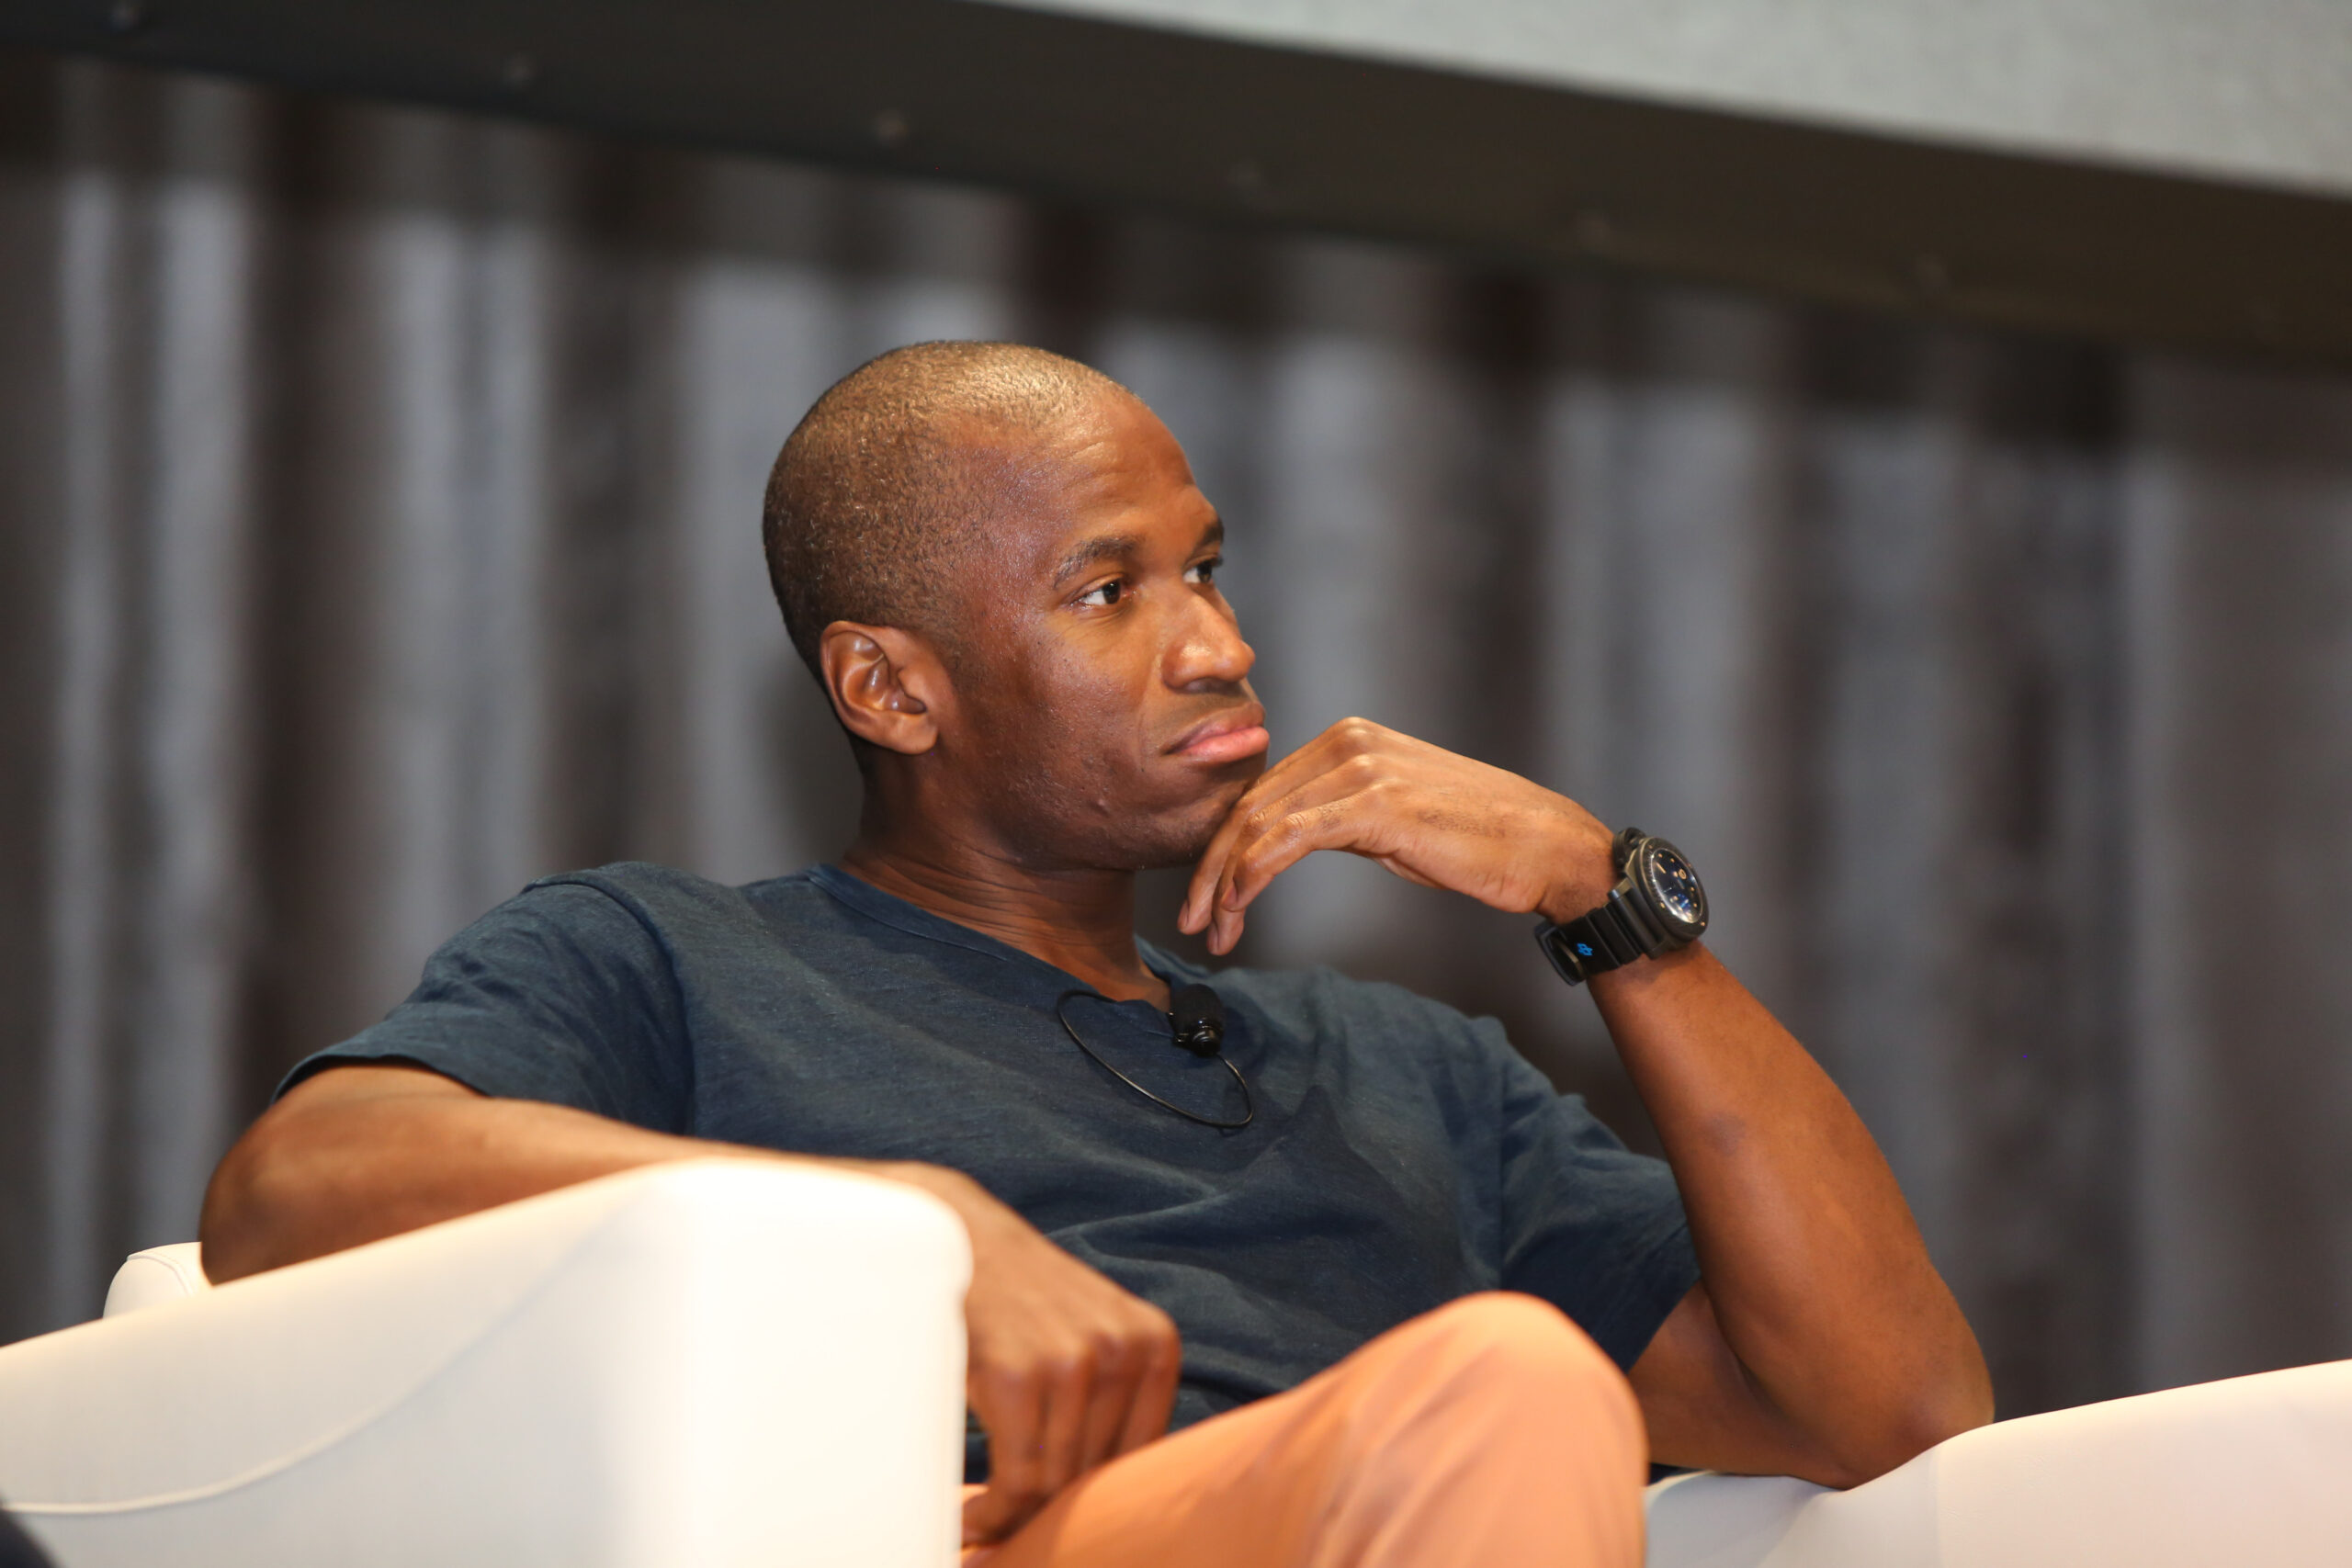 BitMEX's Arthur Hayes and Ben Delo negotiate surrender to U.S. authorities